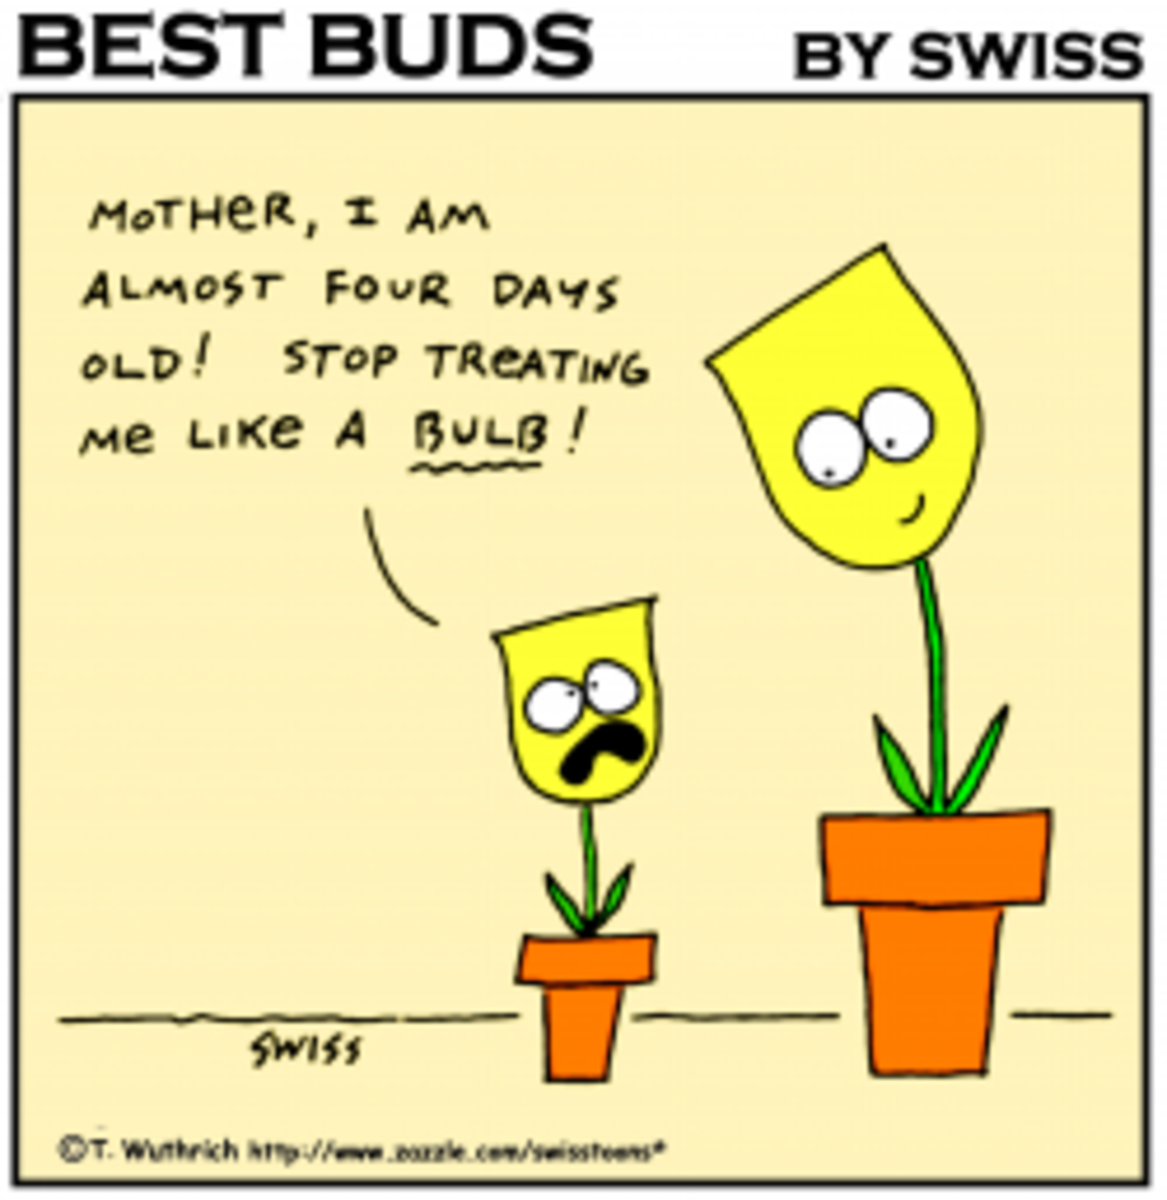 Funny Tulips cartoon and all other cartoons on this page are copyrighted by T. Wuthrich, aka SWISS.